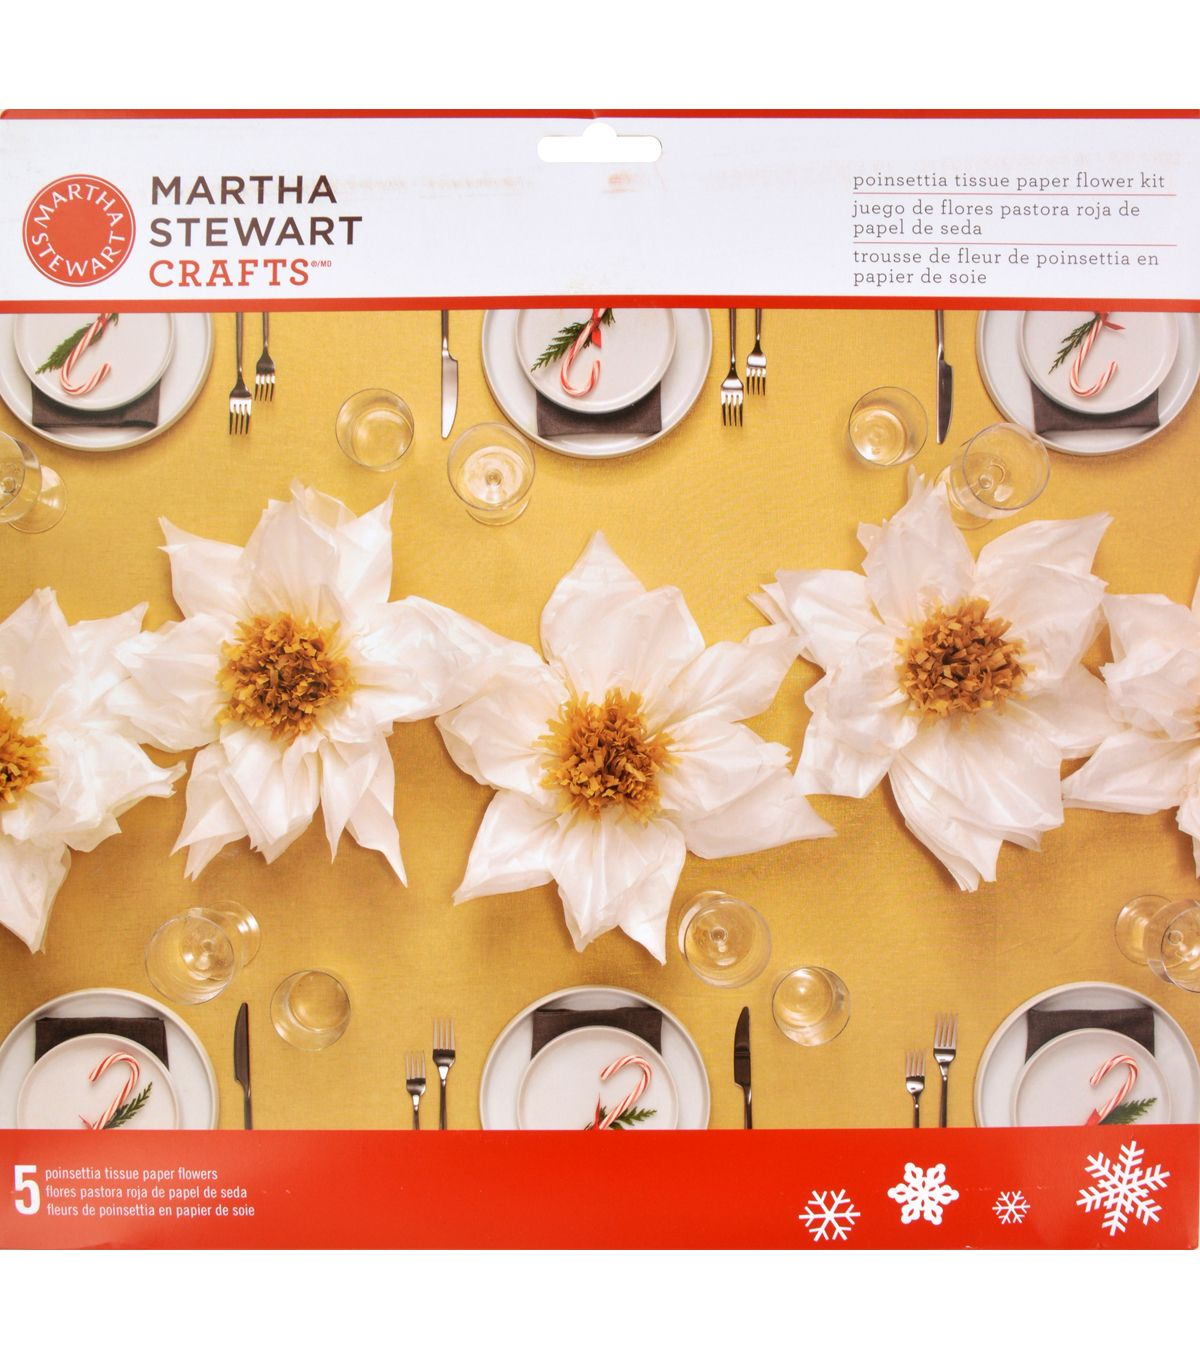 Martha stewart crafts holiday lodge tissue paper flower kit martha stewart crafts holiday lodge tissue paper flower kit mightylinksfo